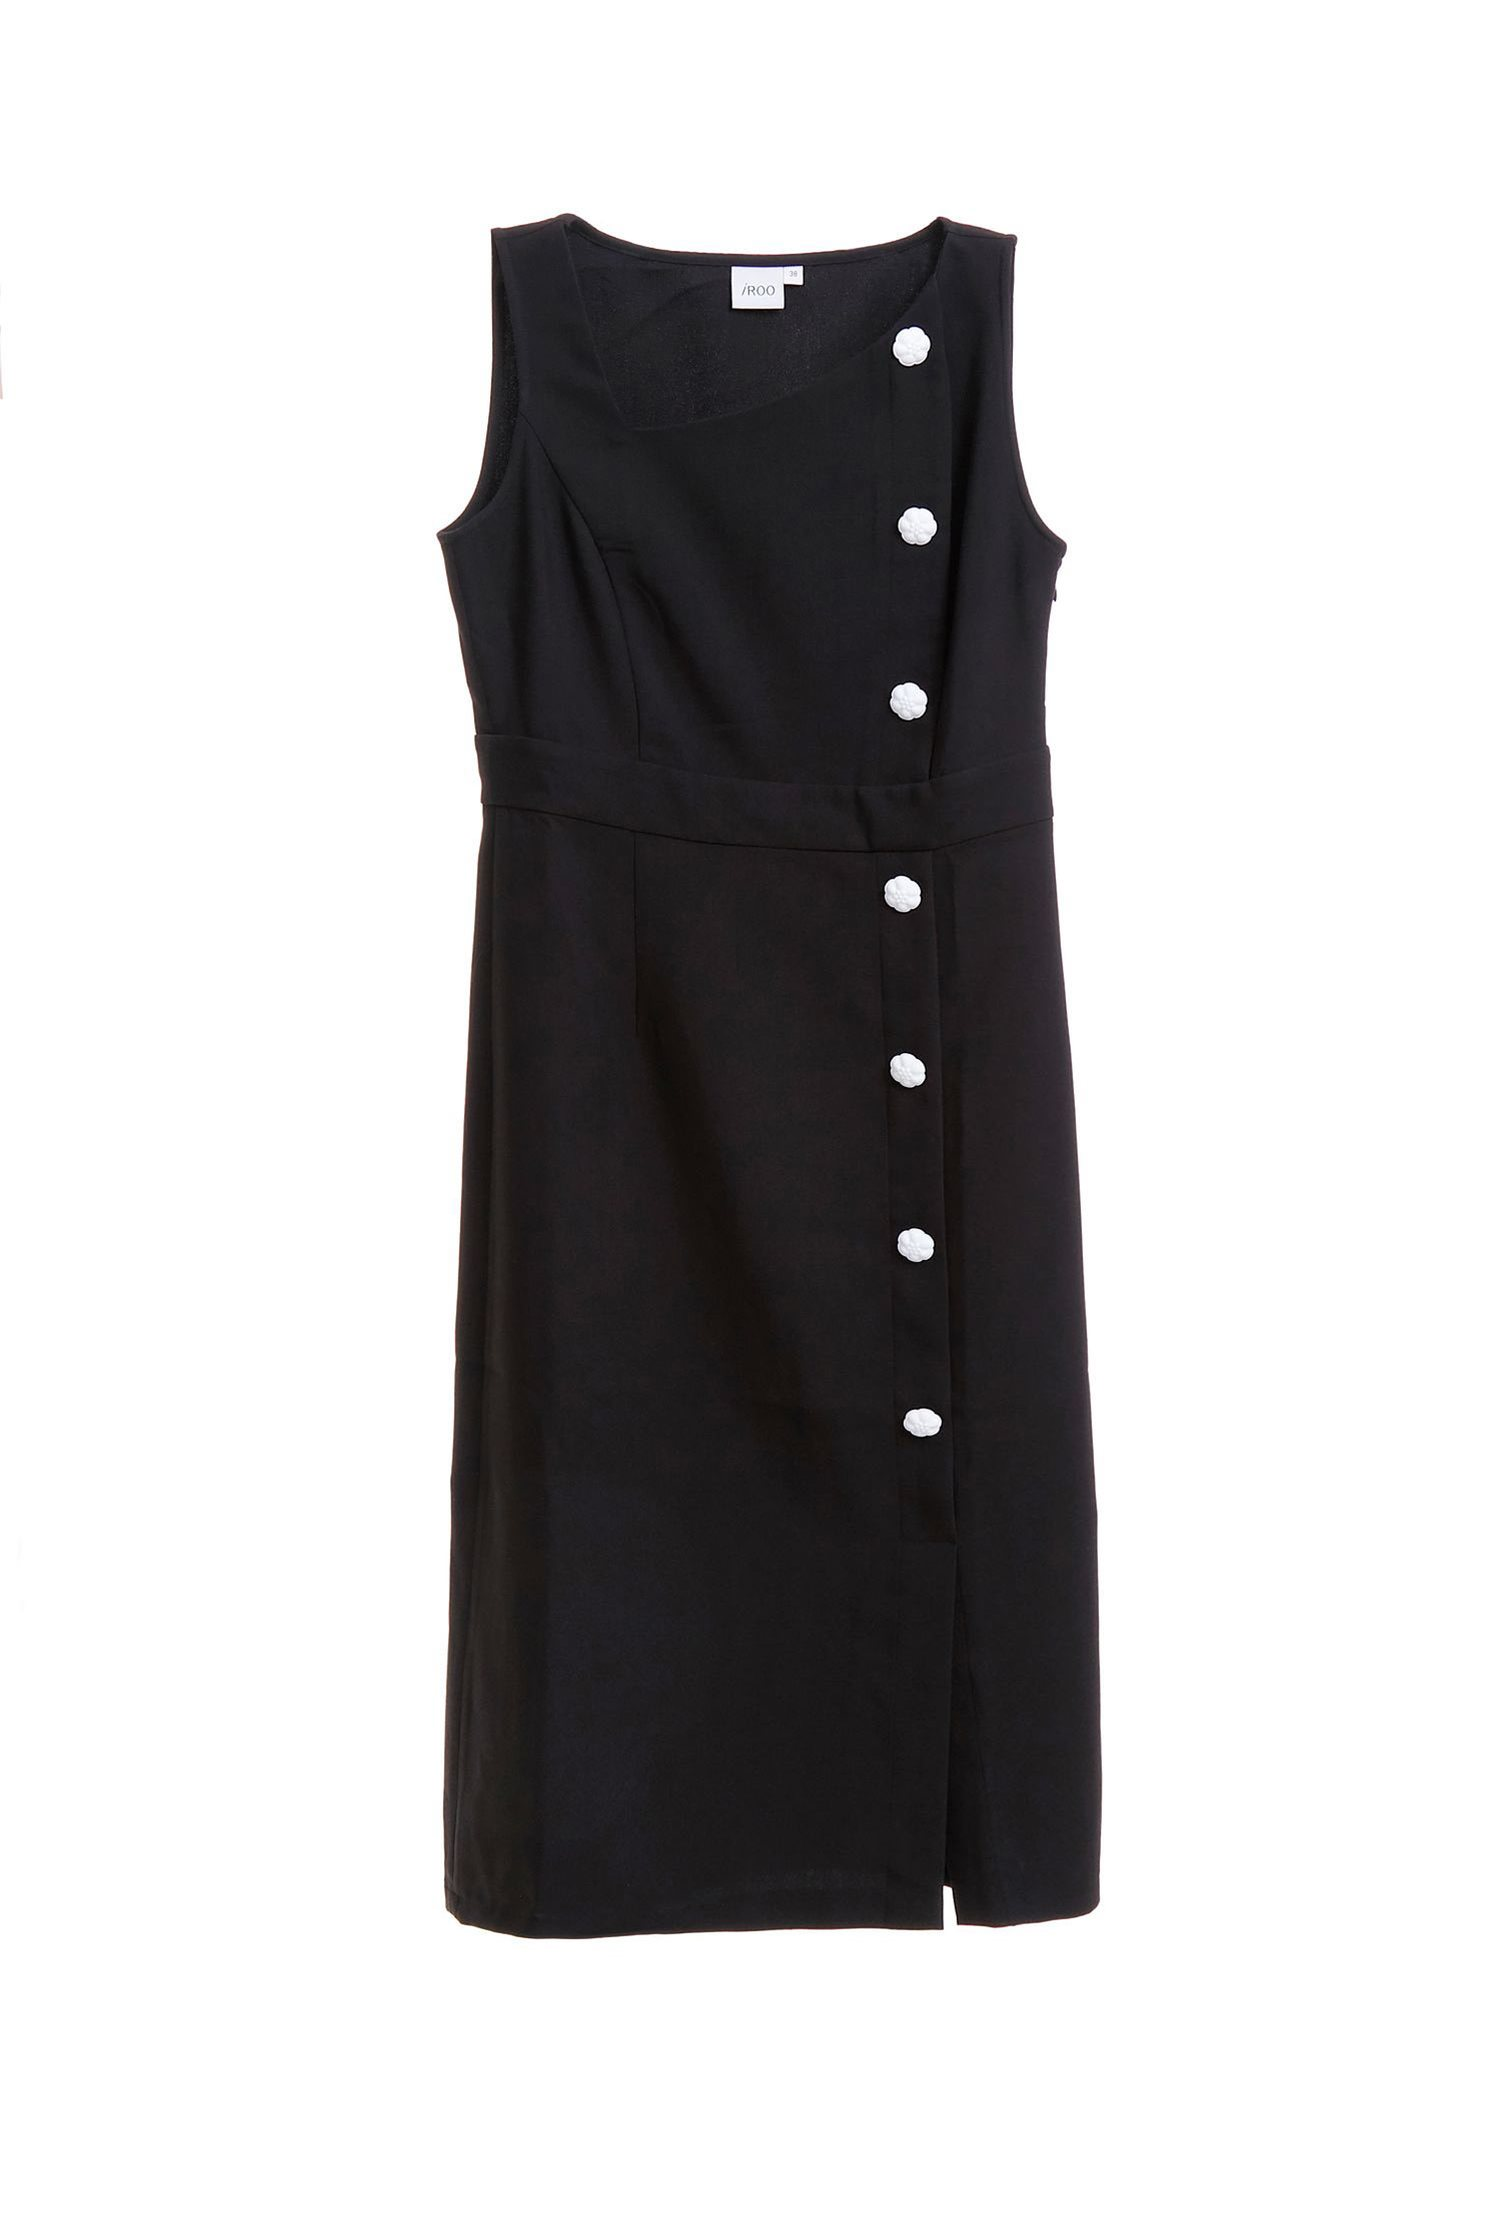 Buckle slim classic dress